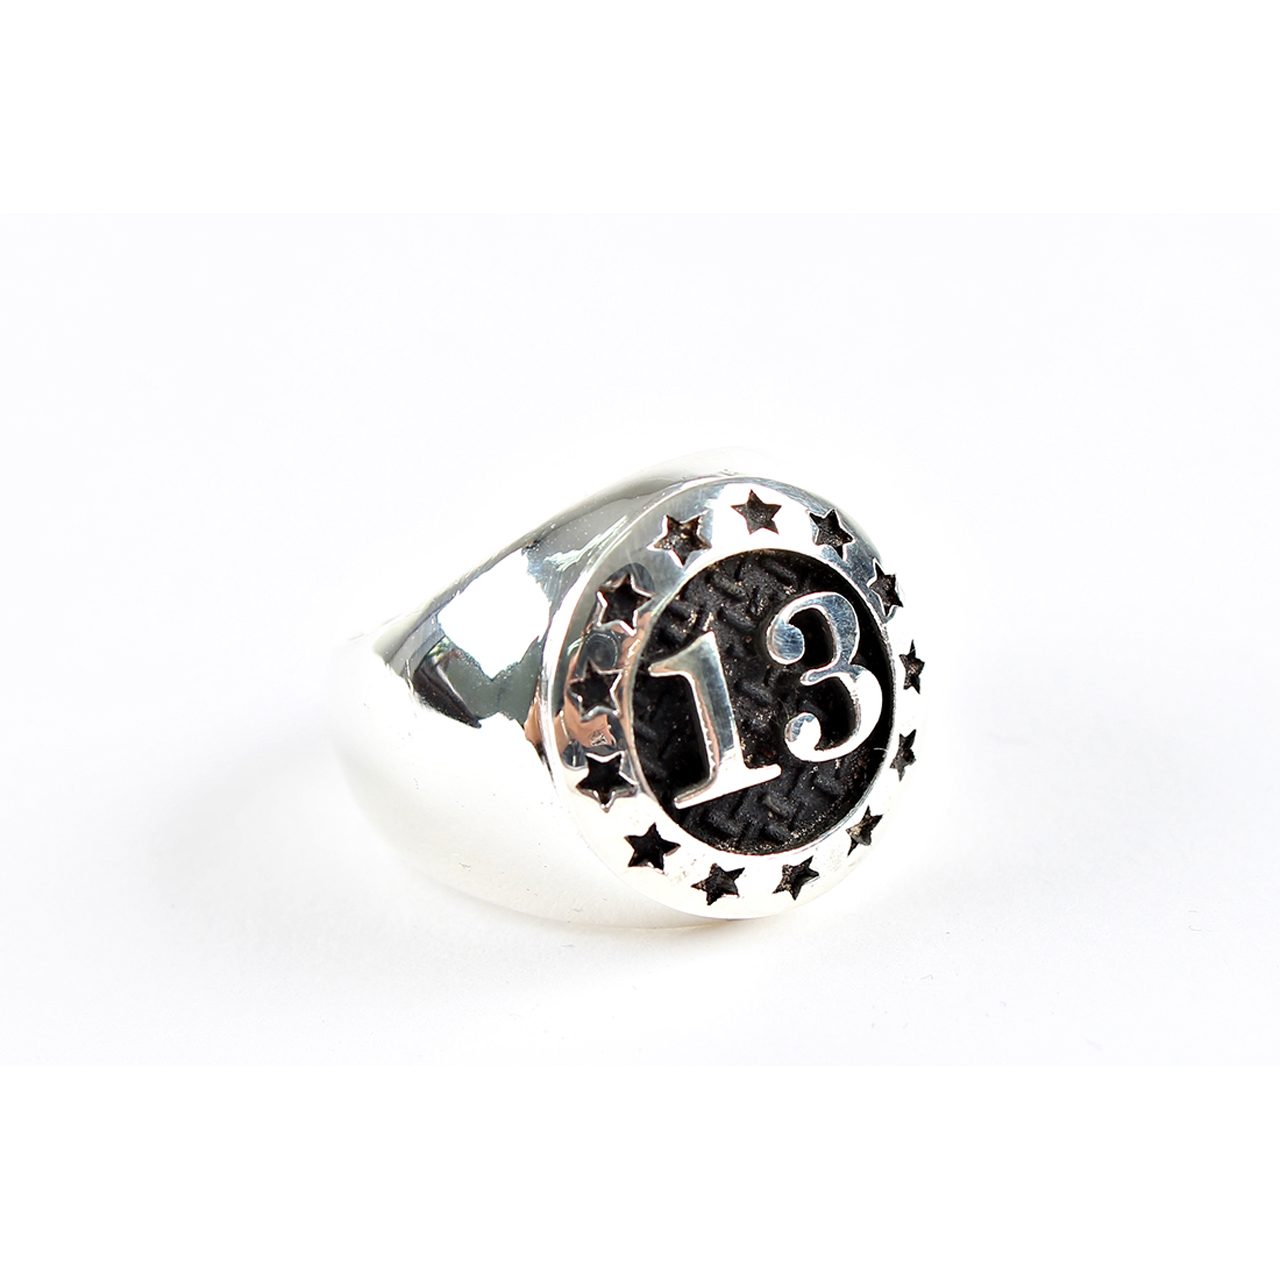 Ms. AGINGCCC X STEELWHEELS '13' RING